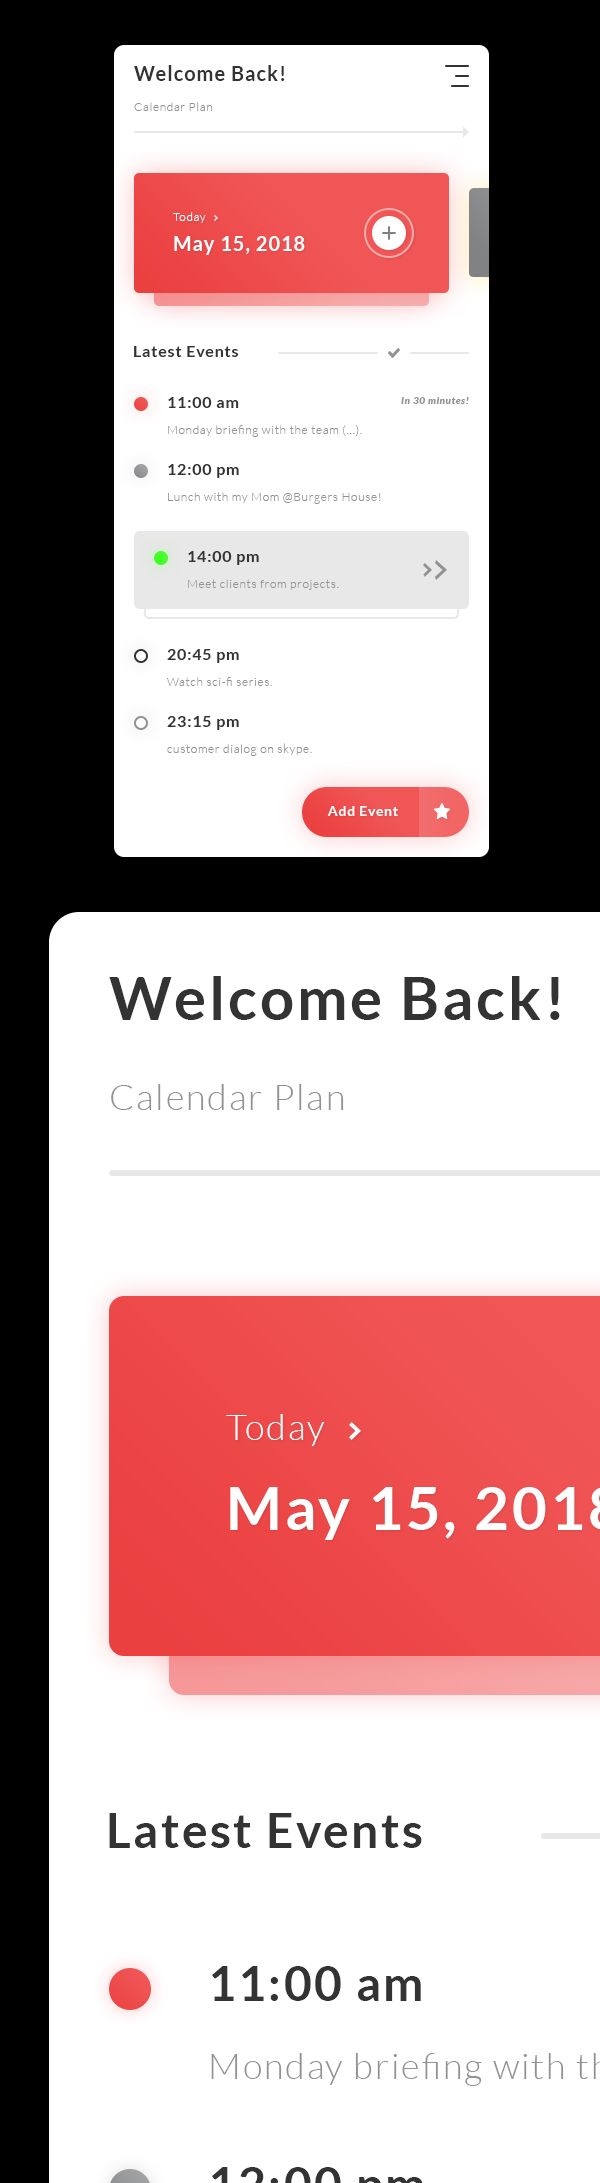 Free Calendar Plan - Tasks Events App